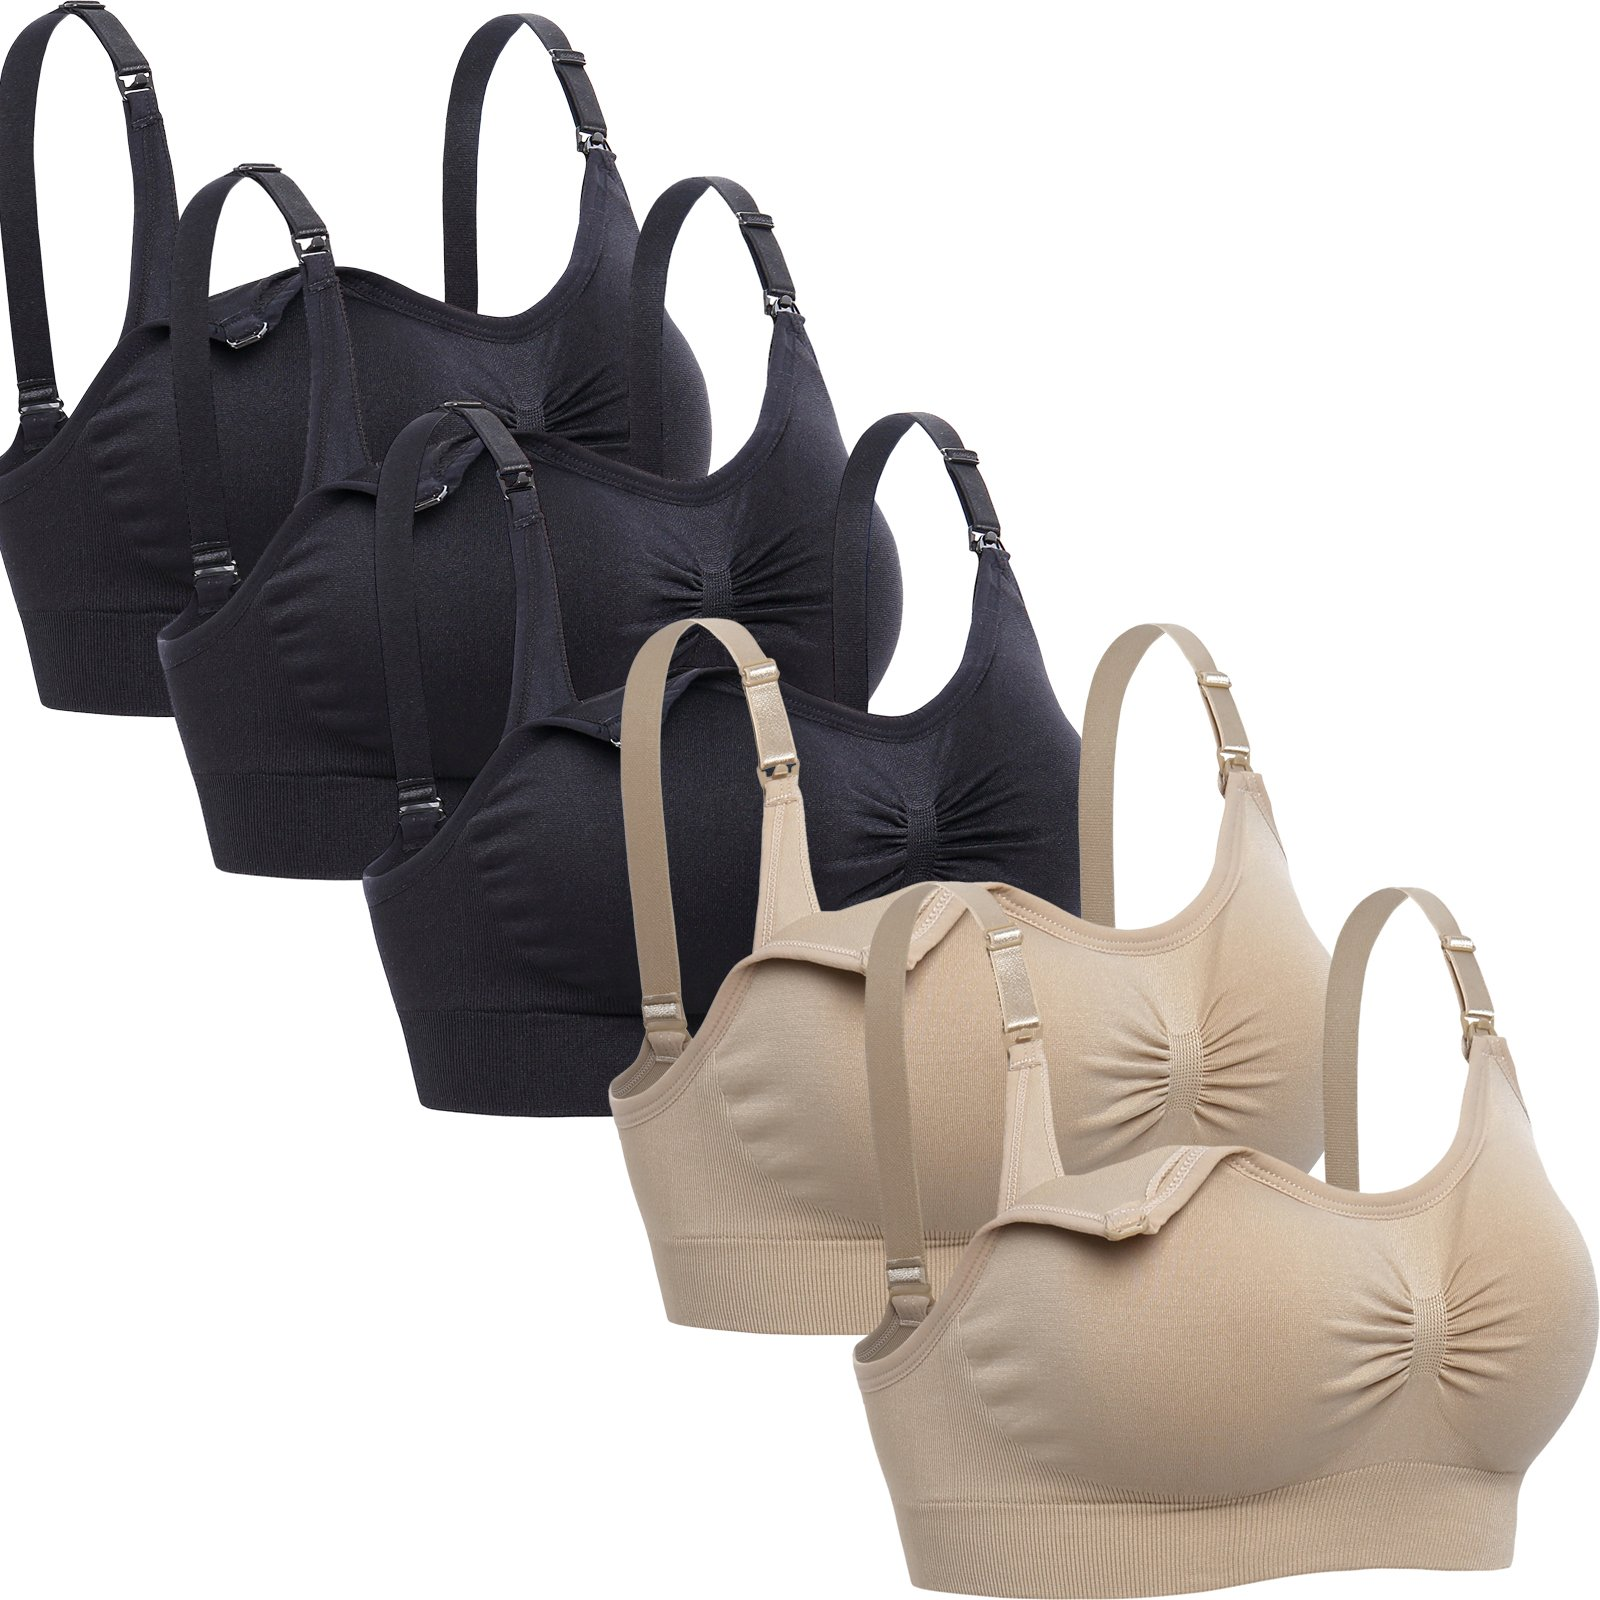 Lataly Womens Sleeping Nursing Bra Wirefree Breastfeeding Maternity Bralette Pack of 5 Color Black Beige Size S